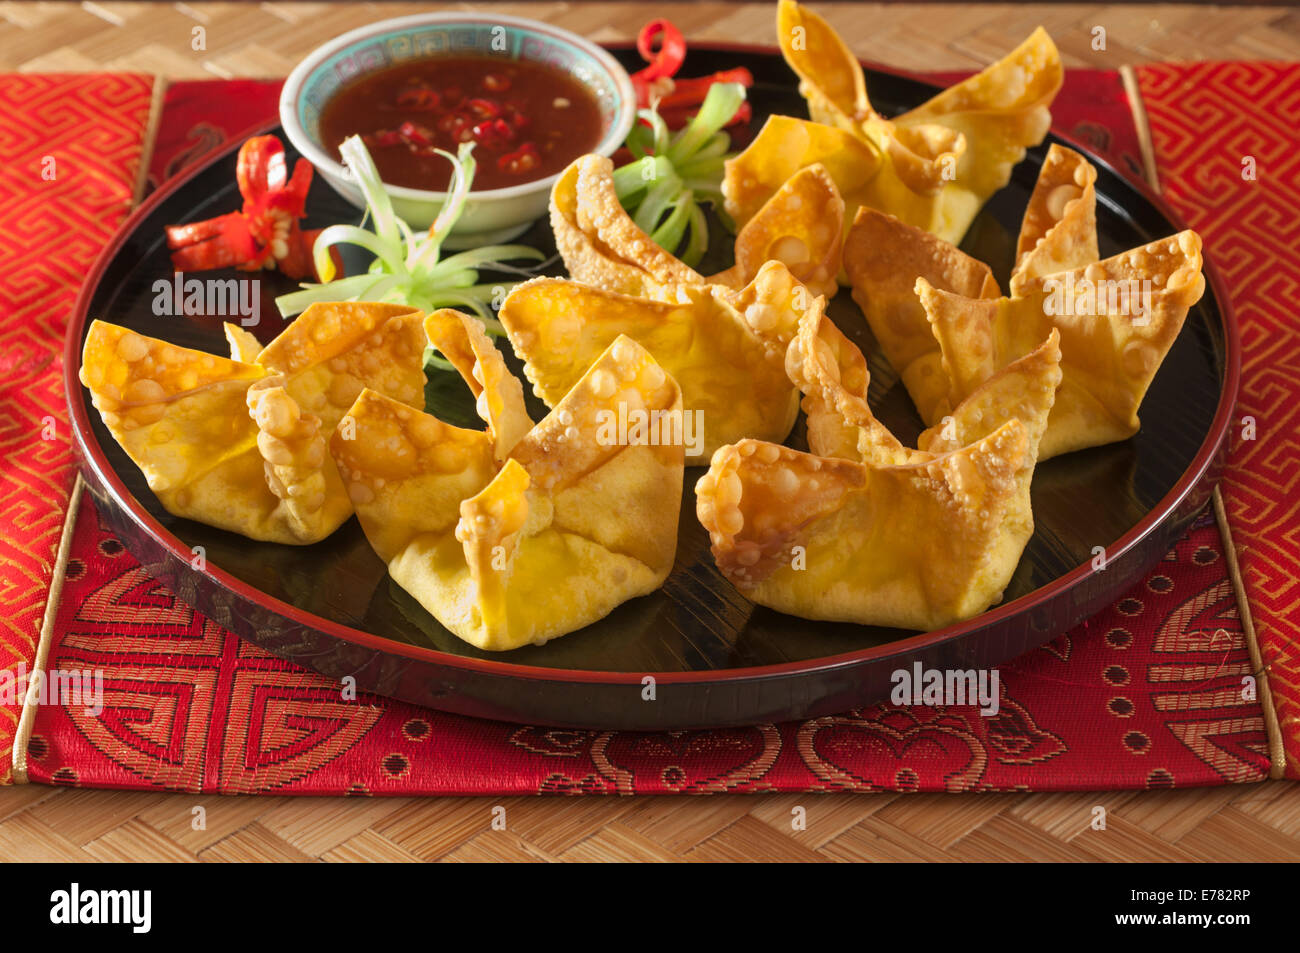 Crab Rangoon. American Chinese deep fried starter. - Stock Image